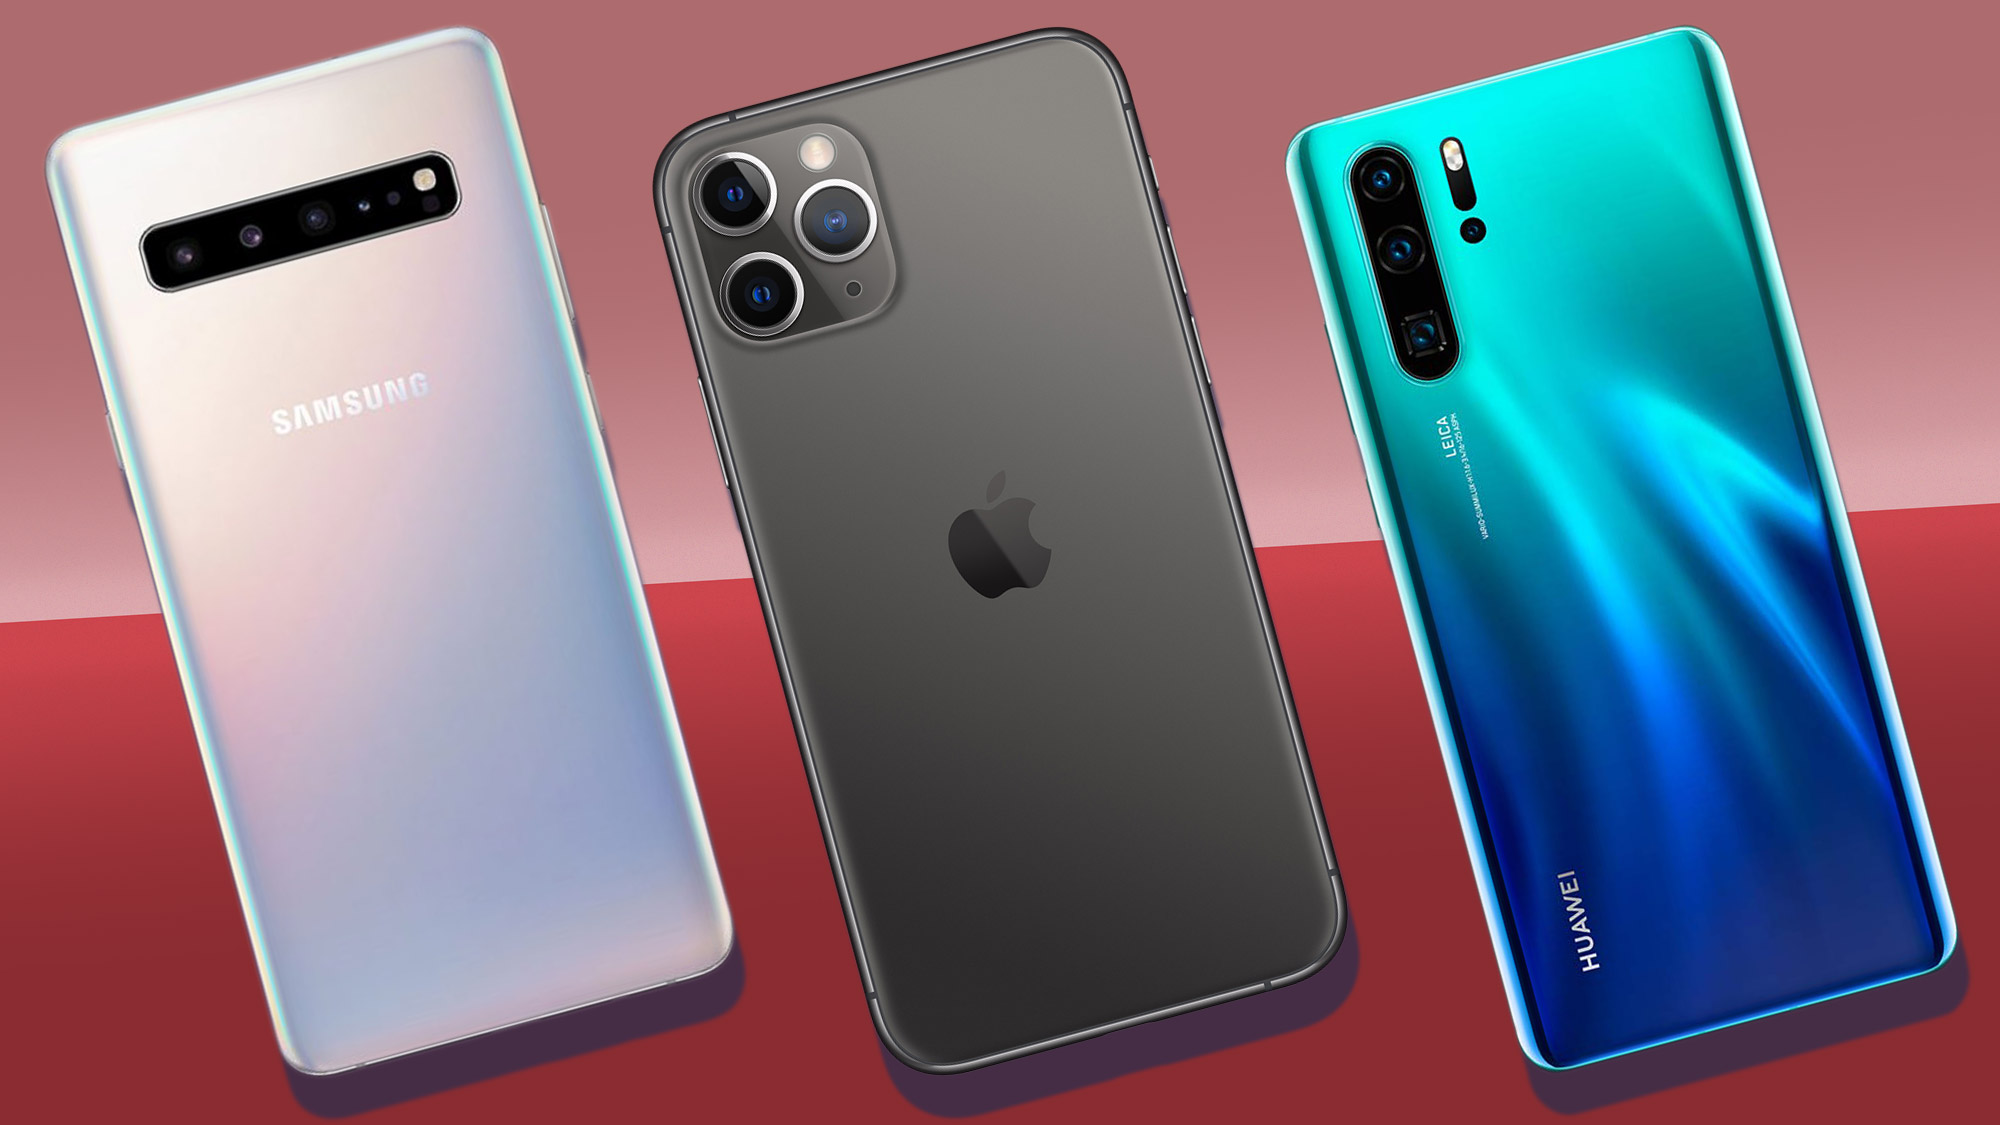 10 Smartphone Features We Hope Finally Arrive in 2020.